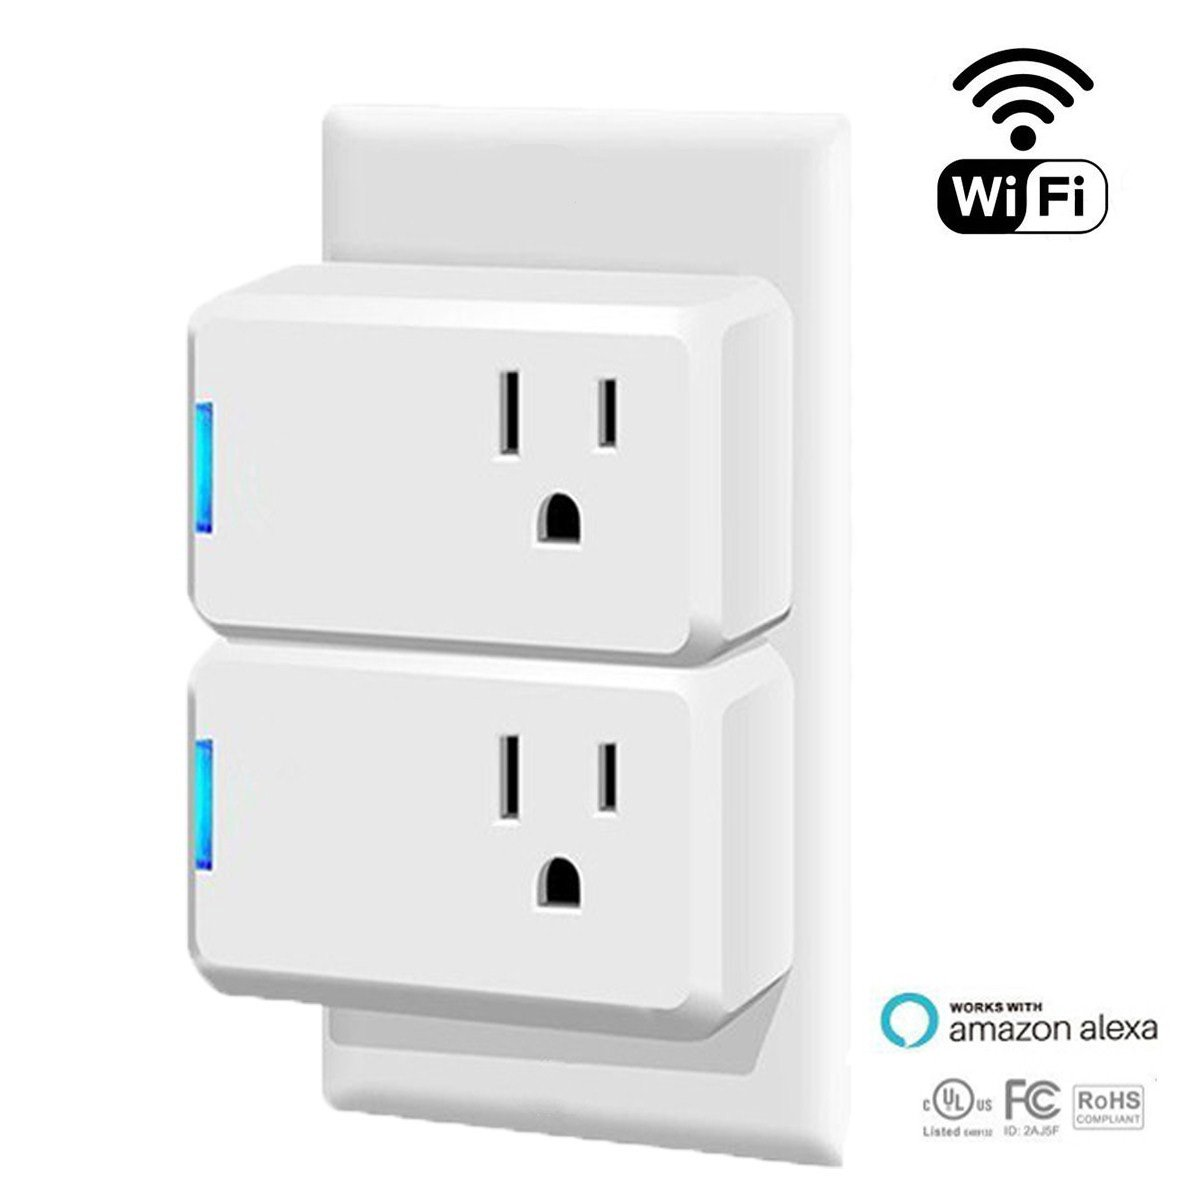 WiFi Smart Plug Google Home - Wireless Smart Socket Outlet, Works With Alexa Google Assistant, No Hub Required, Remote Control and Timing Schedule Function Via Free Android/IOS App(2 Packs) Andthere